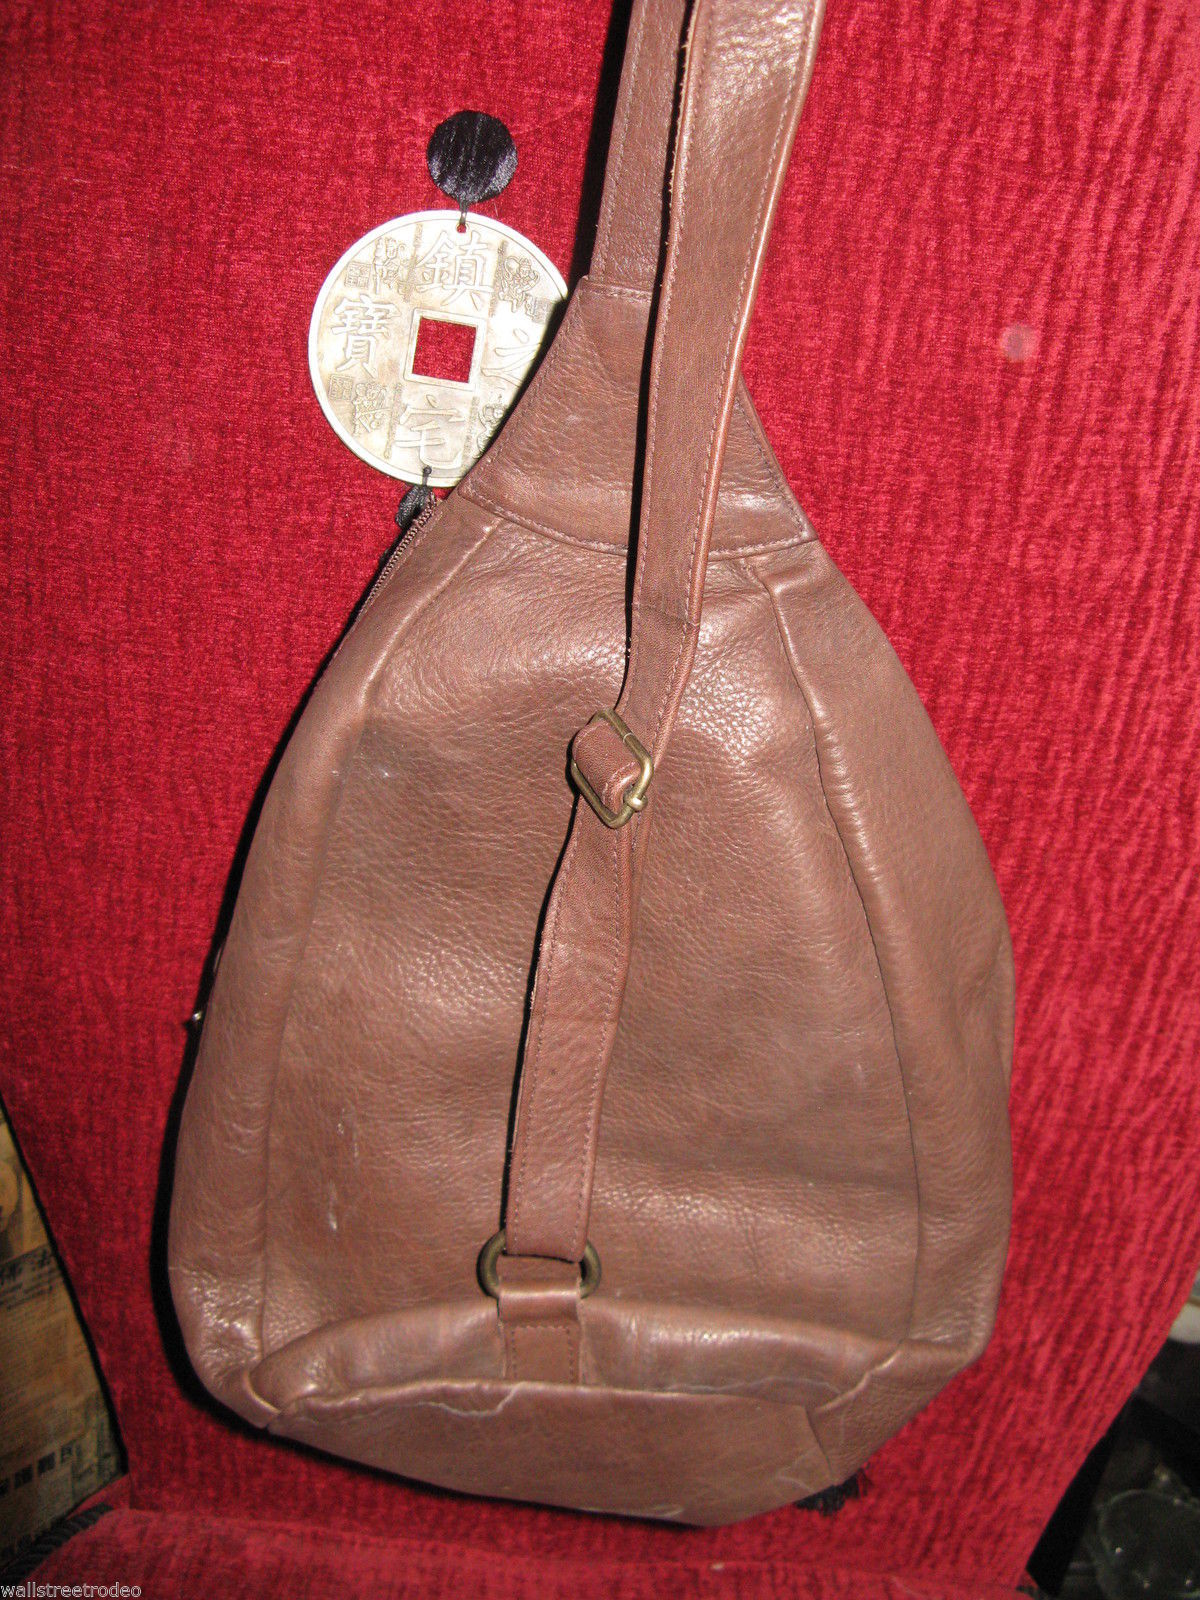 Ellington Portland leather mini backpack rucksack sling tote handbag purse as-is